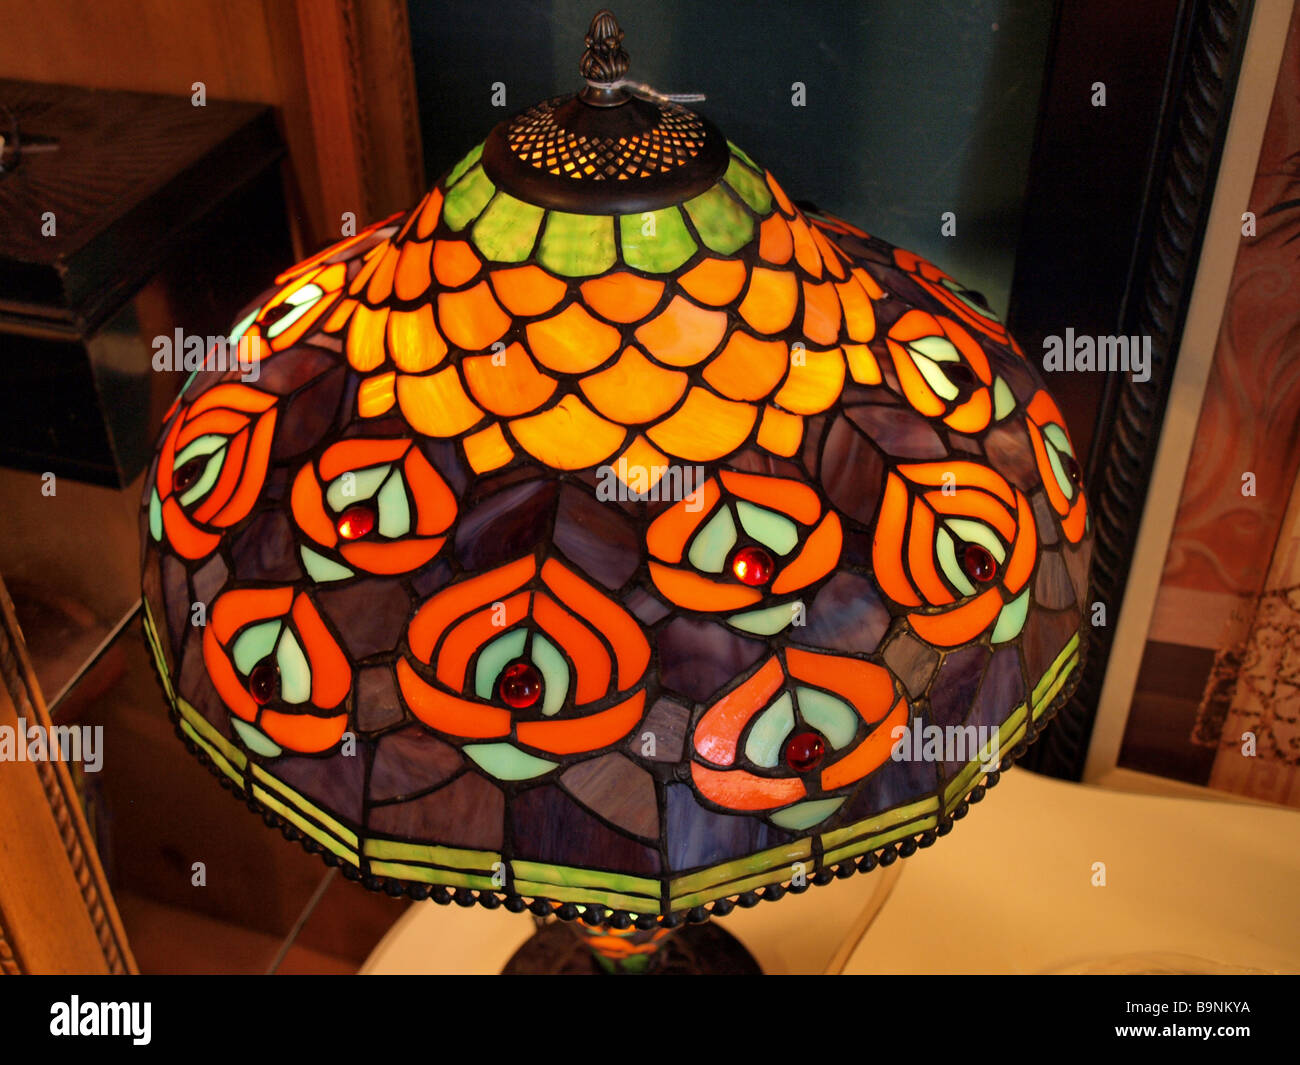 Art Deco Style Stained Glass Lamp Shade From Above With